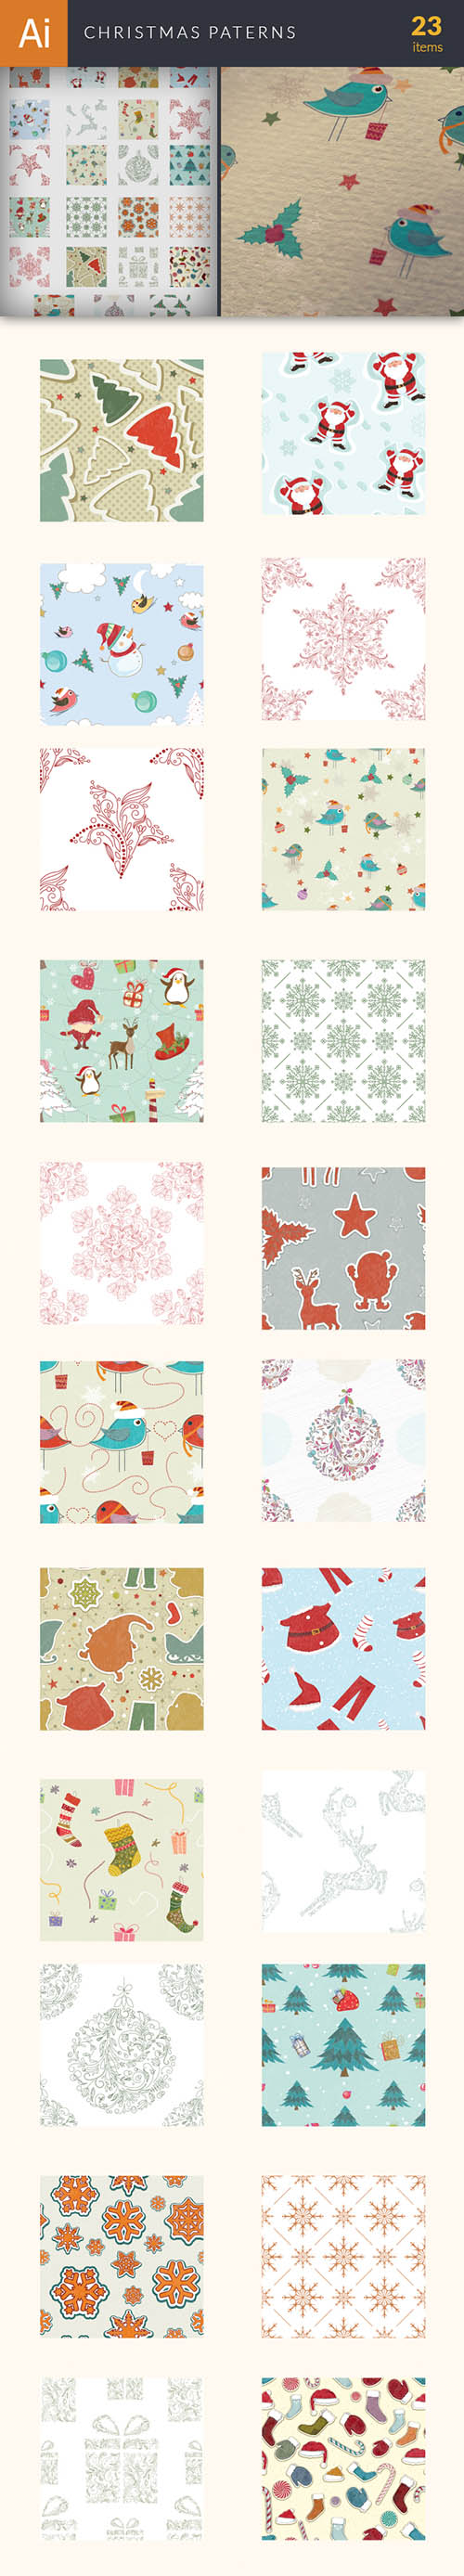 Vector Christmas Patterns Set - Winter Elements